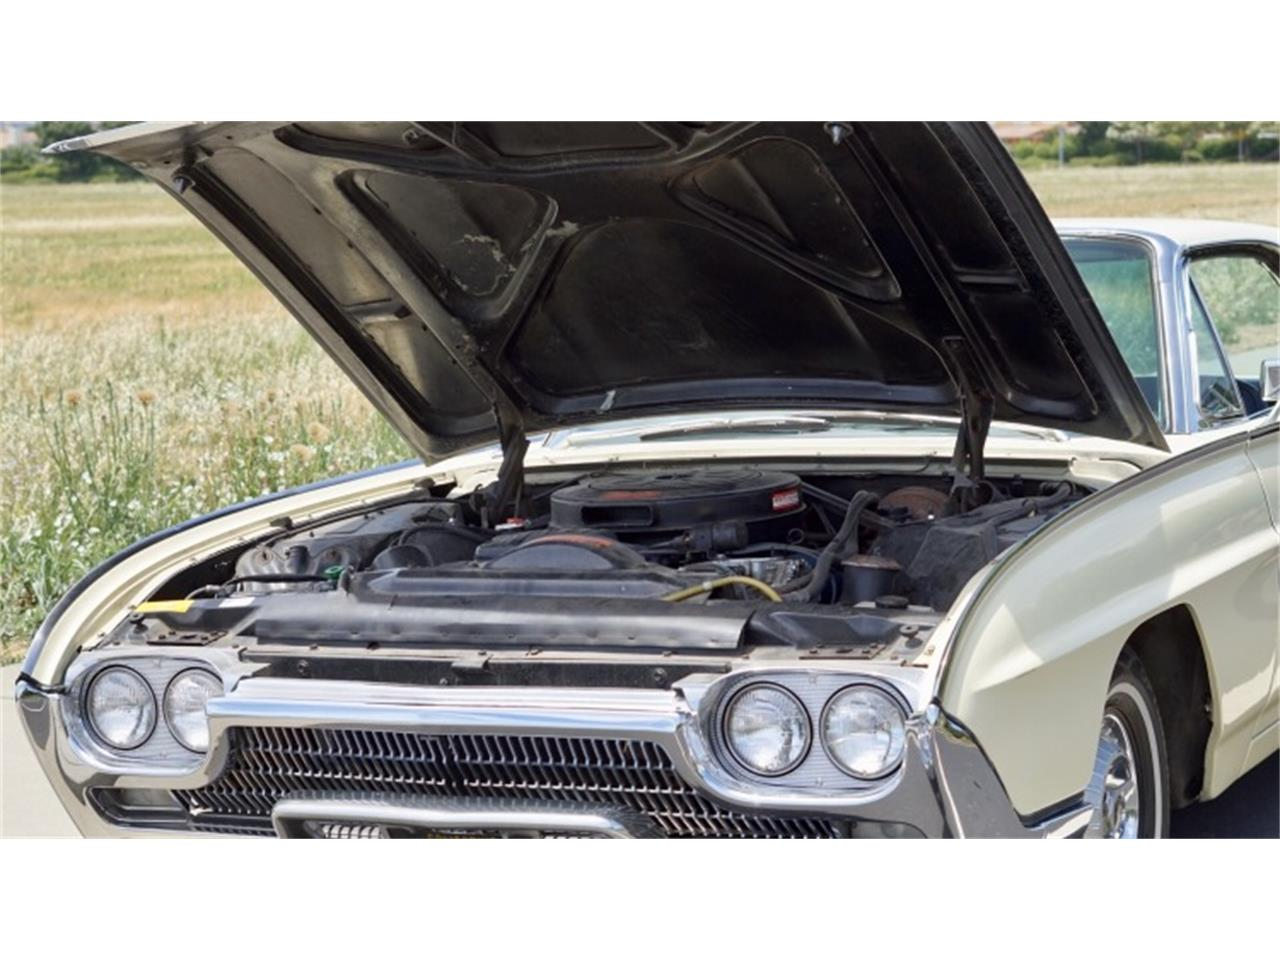 Large Picture of 1963 Ford Thunderbird located in Sparks Nevada Auction Vehicle Offered by Motorsport Auction Group - QGI5